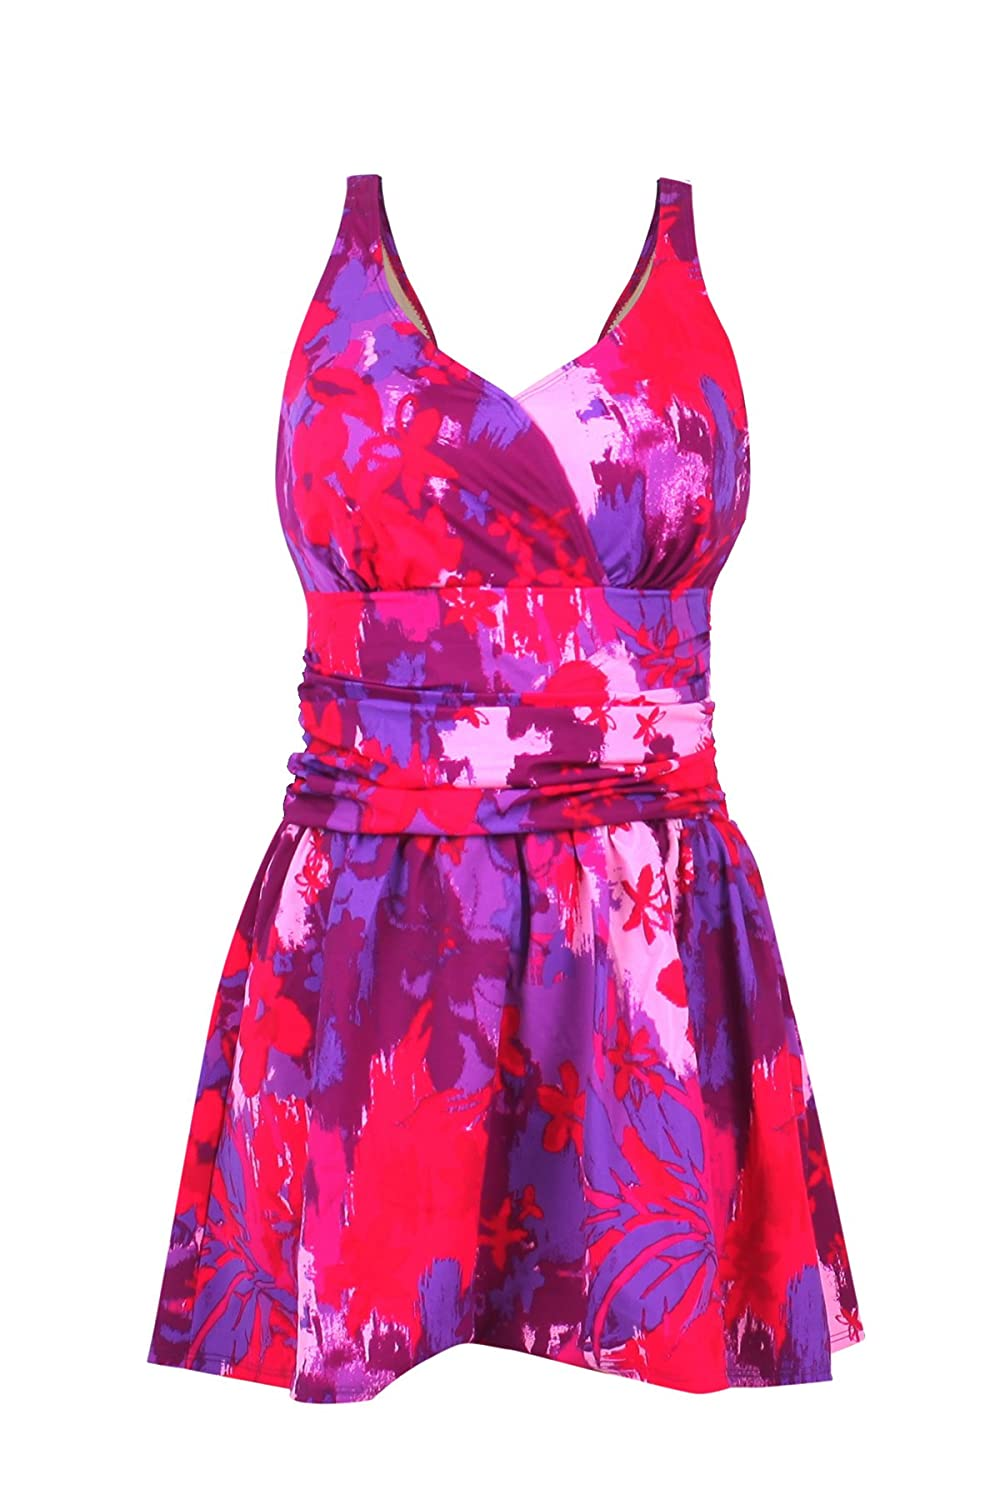 JINXUEER Women/'s Plus Size Swim Dress Floral Print Ruched Modest Slimming One Piece Skirt Swimsuit